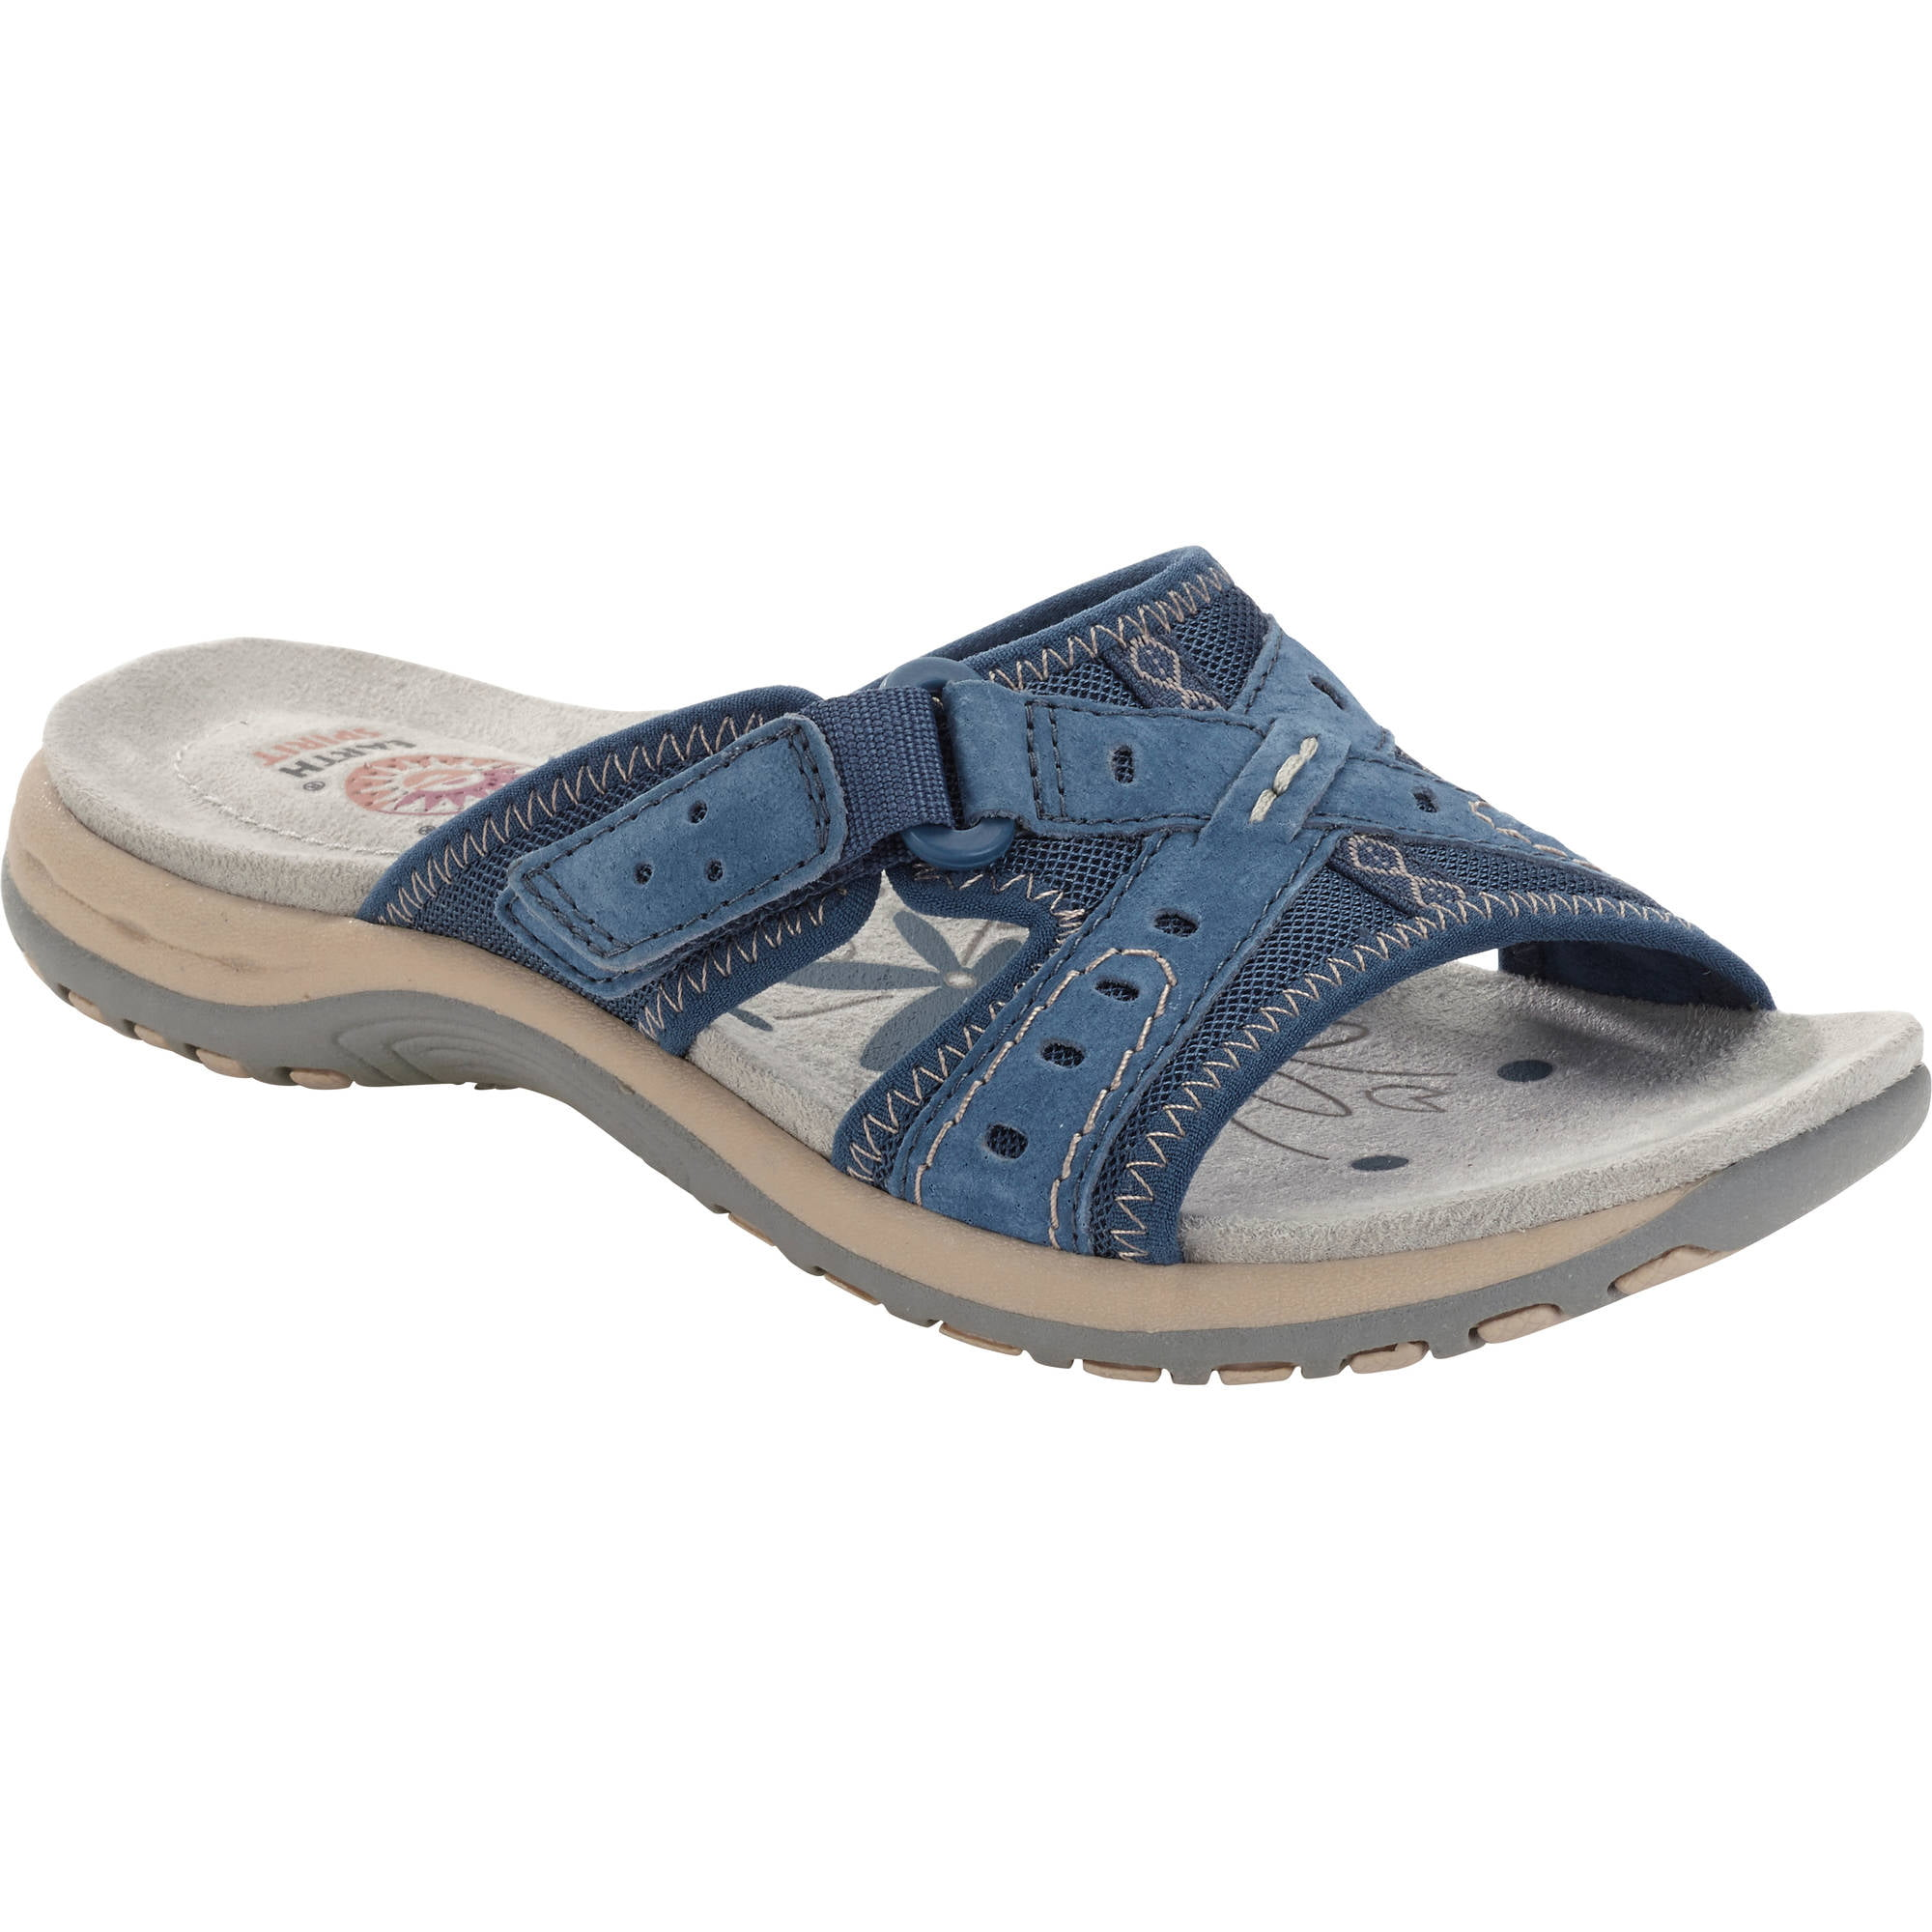 Earth Spirit Women's Gabi Sandal by